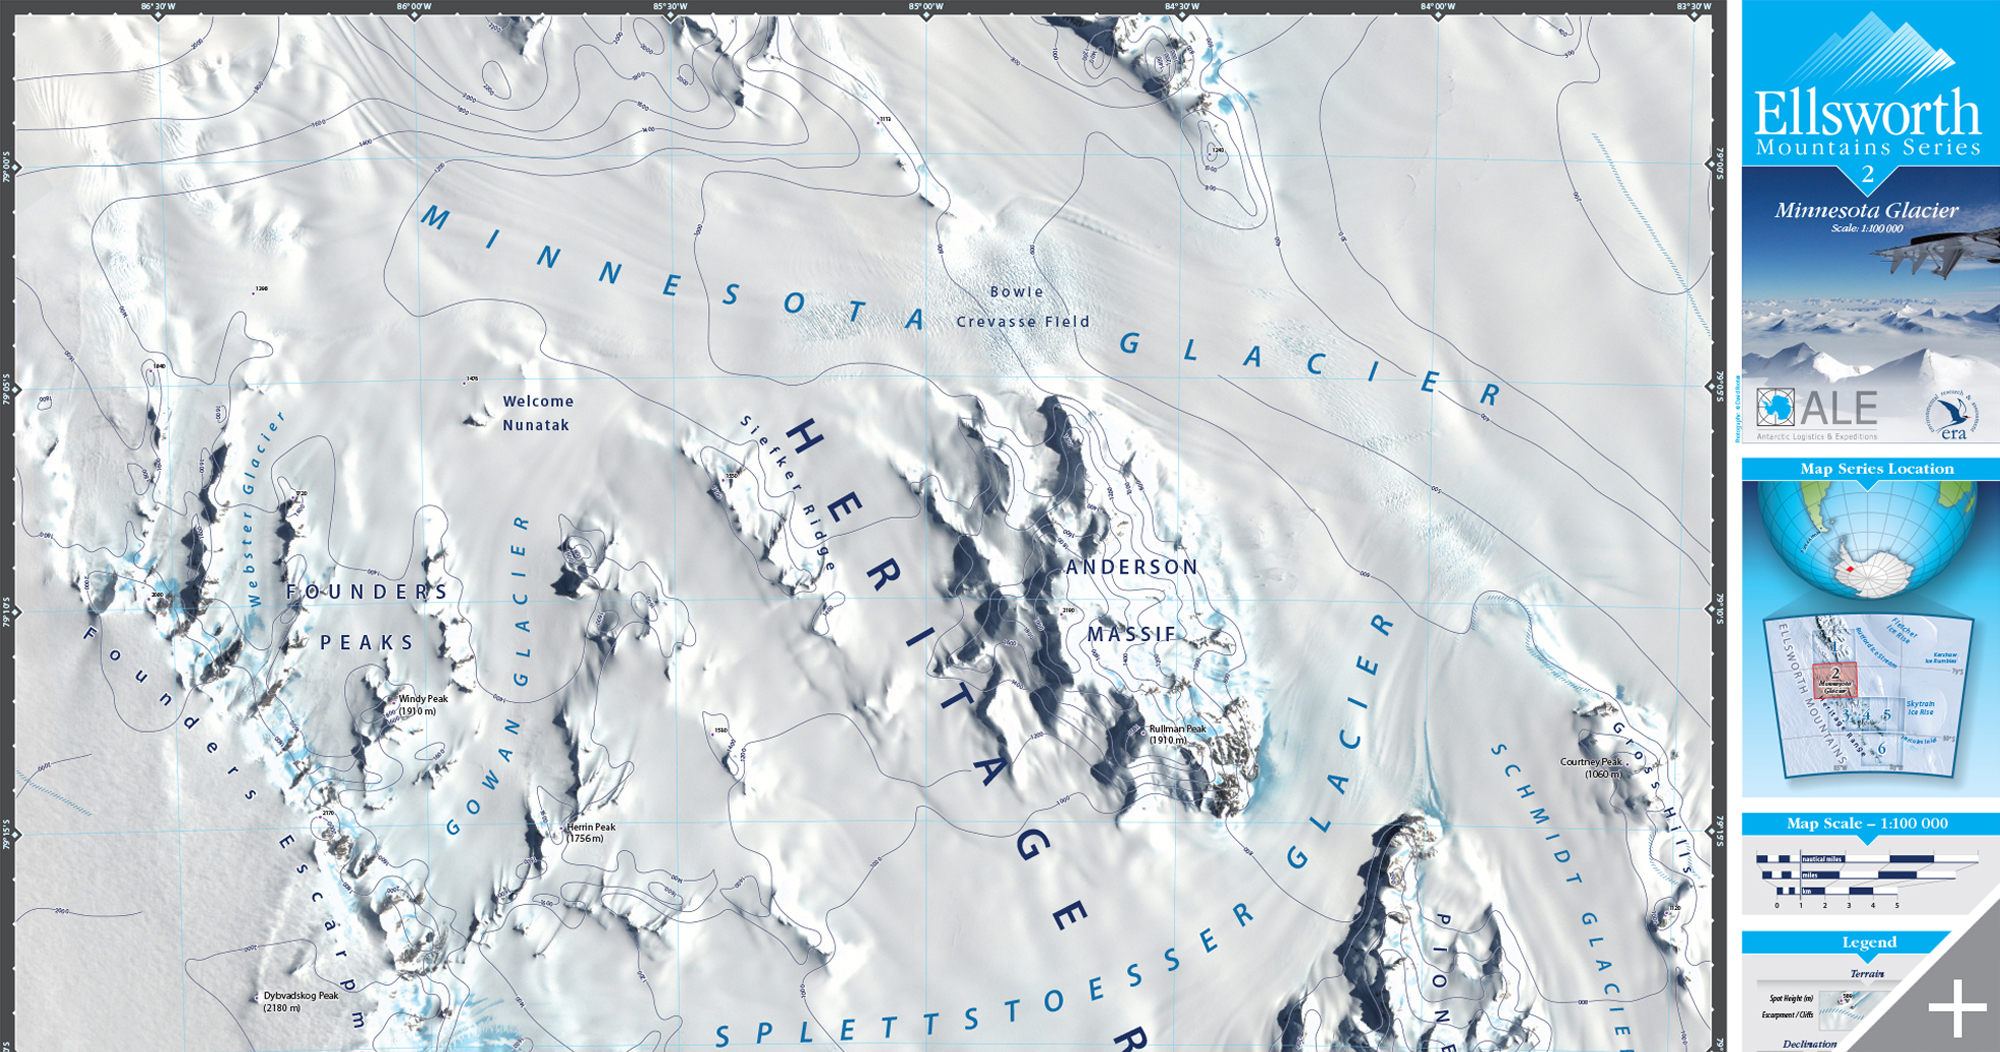 MAP DESIGN - Antarctic Logistics & Expeditions/Ellsworth Mountain Series - ©UnParalleled, LLC dba UP-Ideas / Roger Sawhill / Mark Braught - Atlanta, Georgia | Lawrenceville, Georgia | Commerce, Georgia